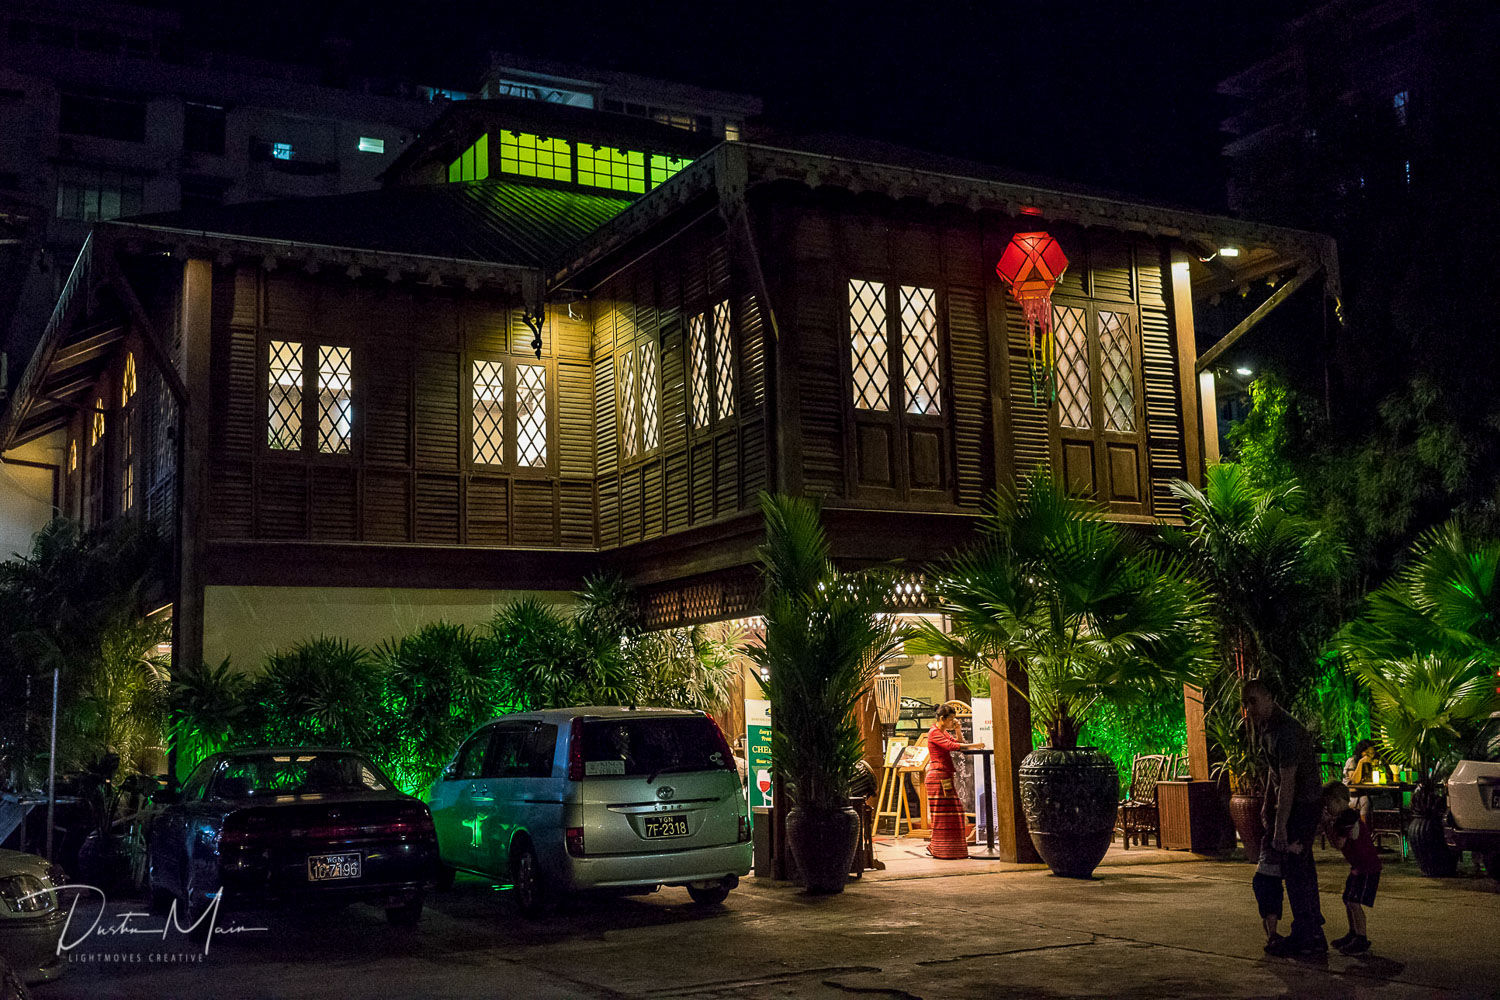 Dinner in teak mansion from the turn of the 20th century